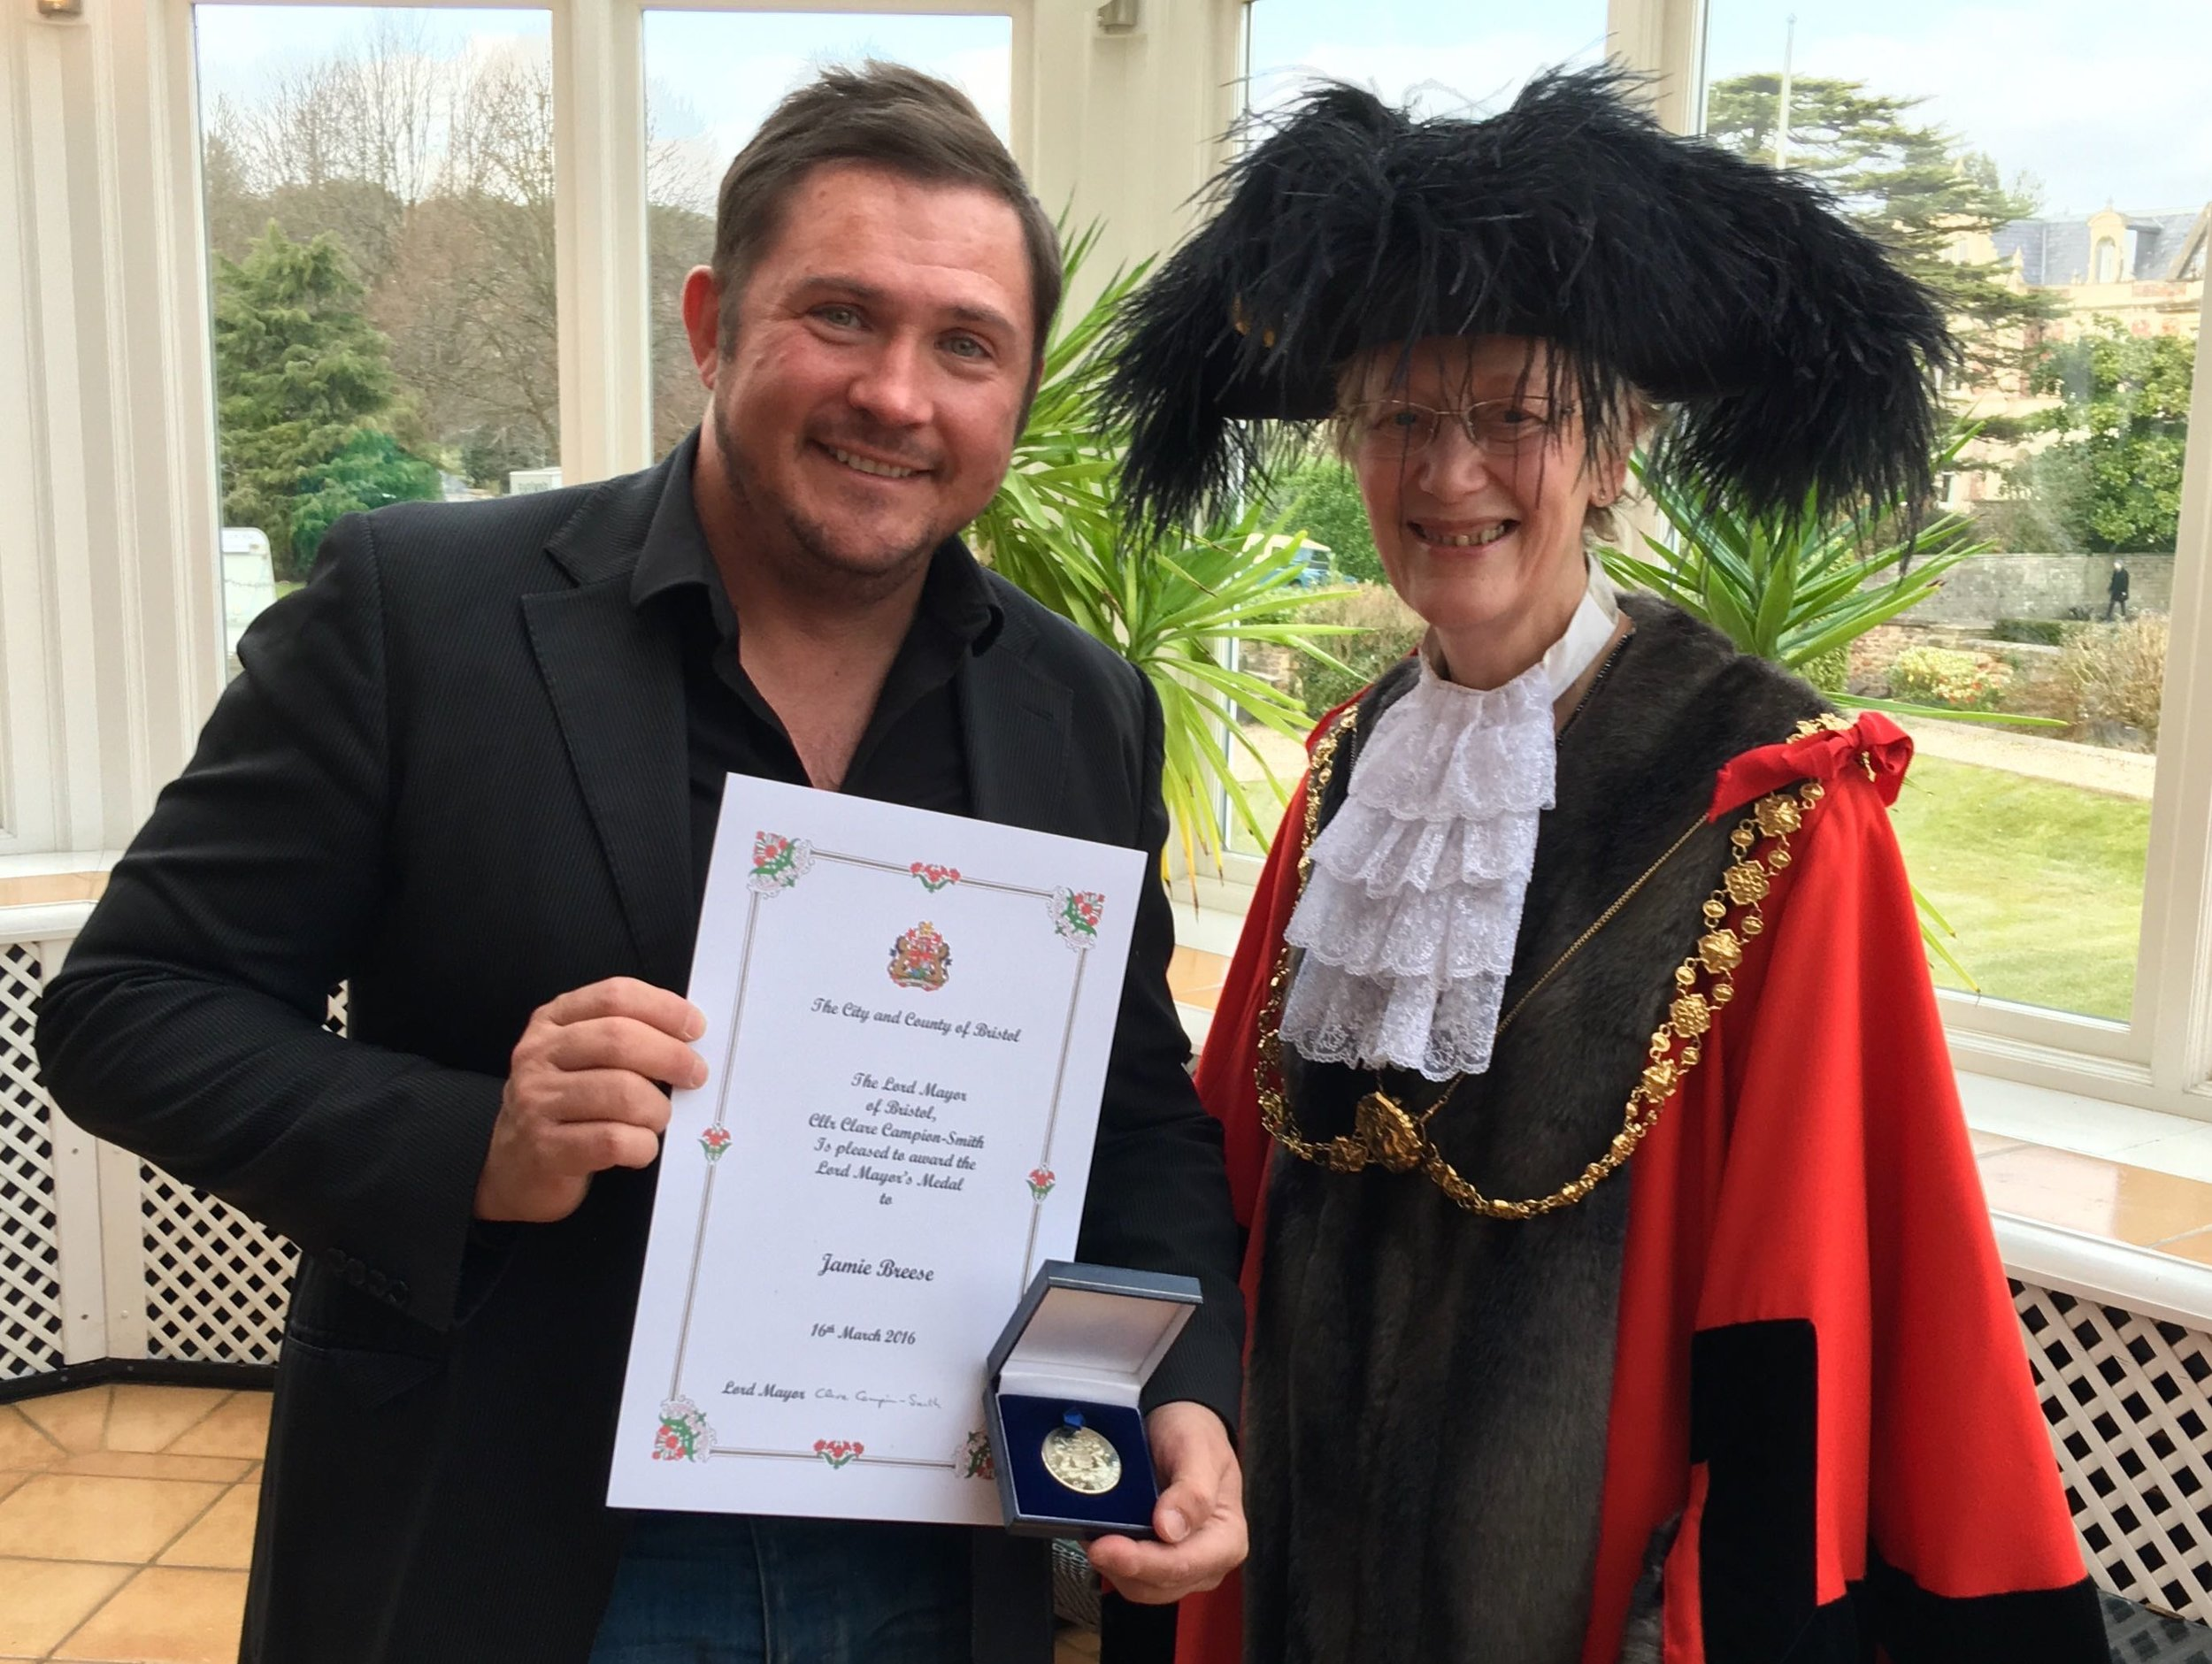 - Receiving the prestigious Lord Mayor's Medal in March 2016